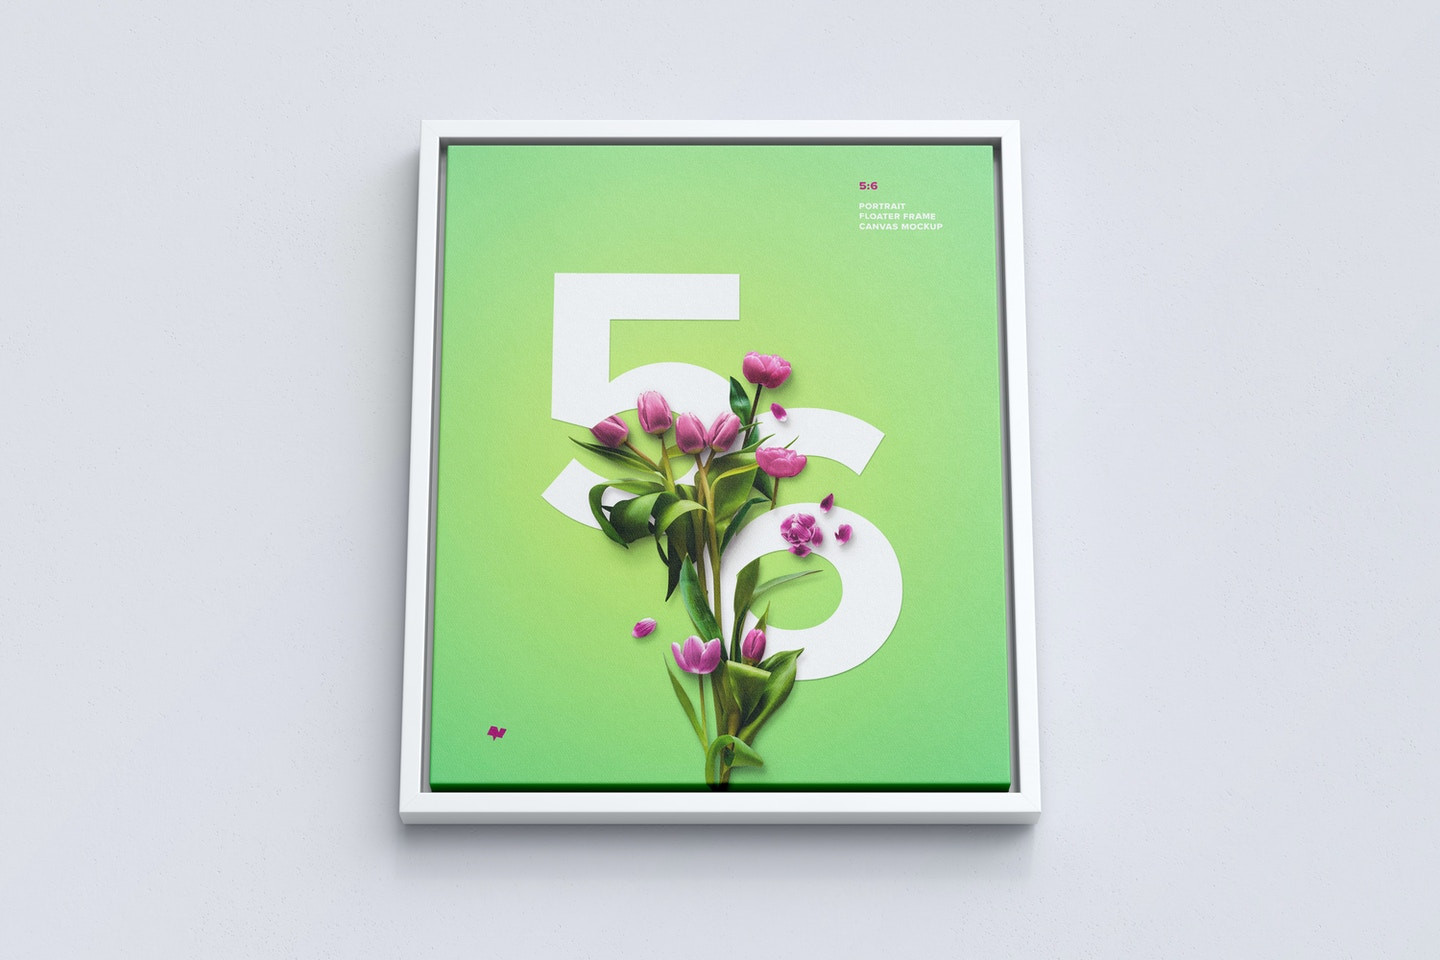 5:6 Portrait Canvas Mockup in Floater Frame, Bottom Front View